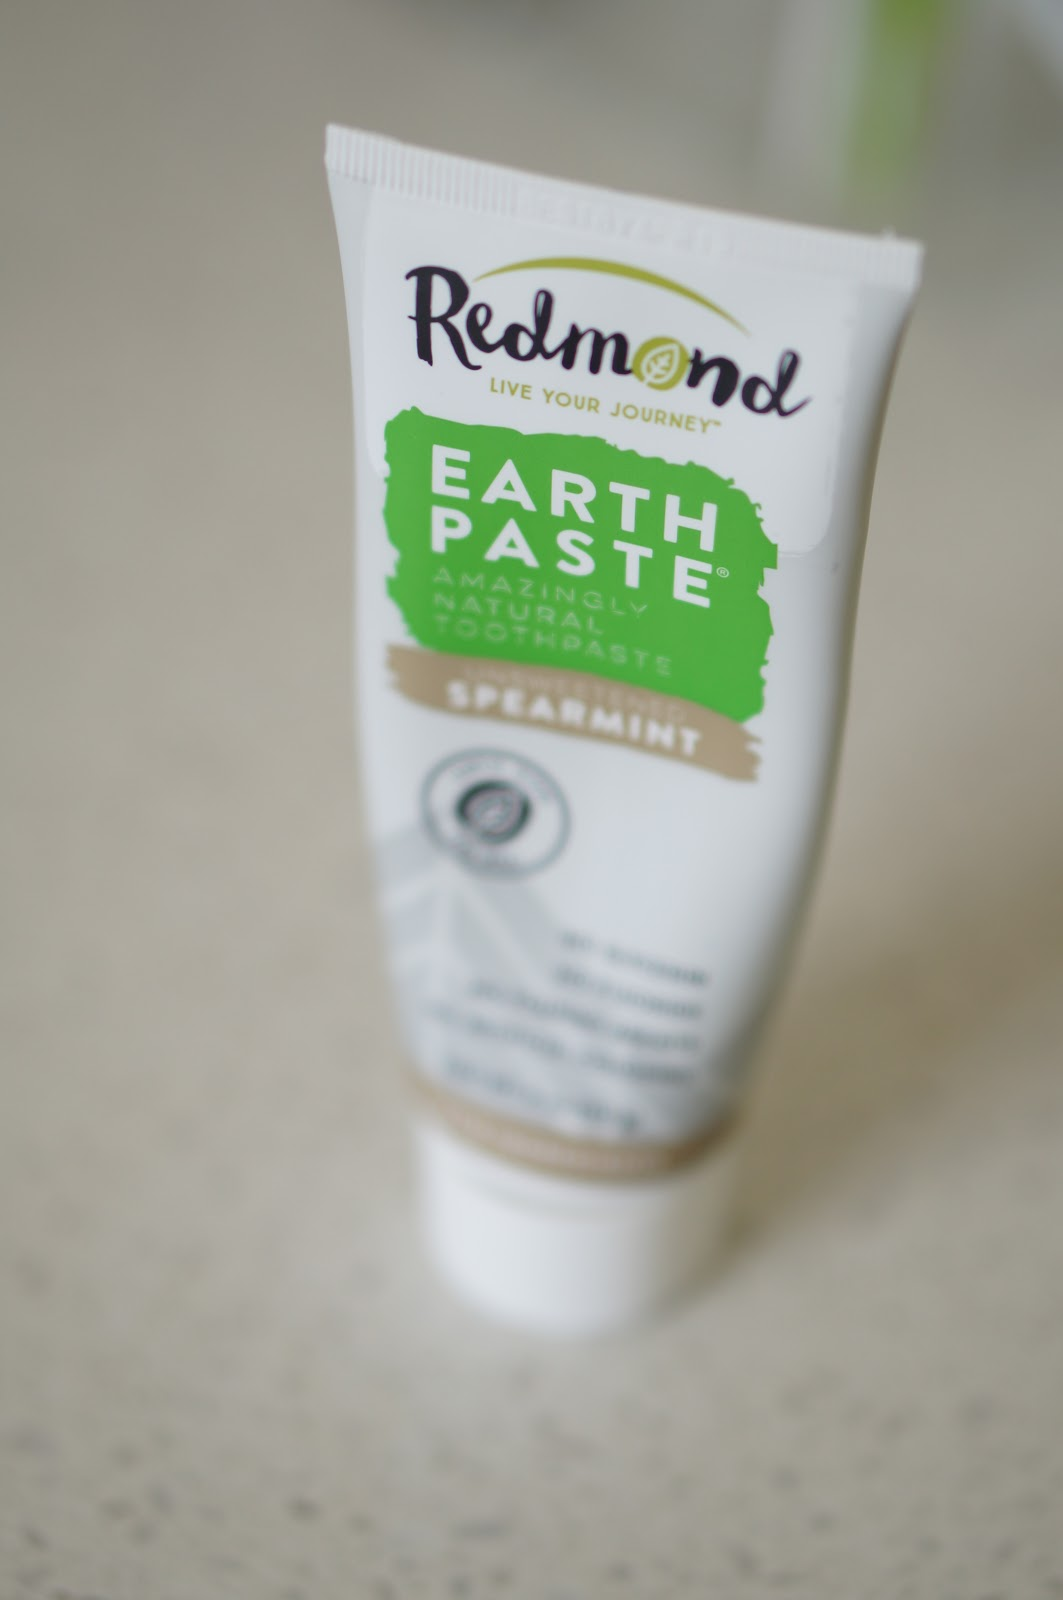 Rebecca Lately Grove Collaborative Redmond Earthpaste Review